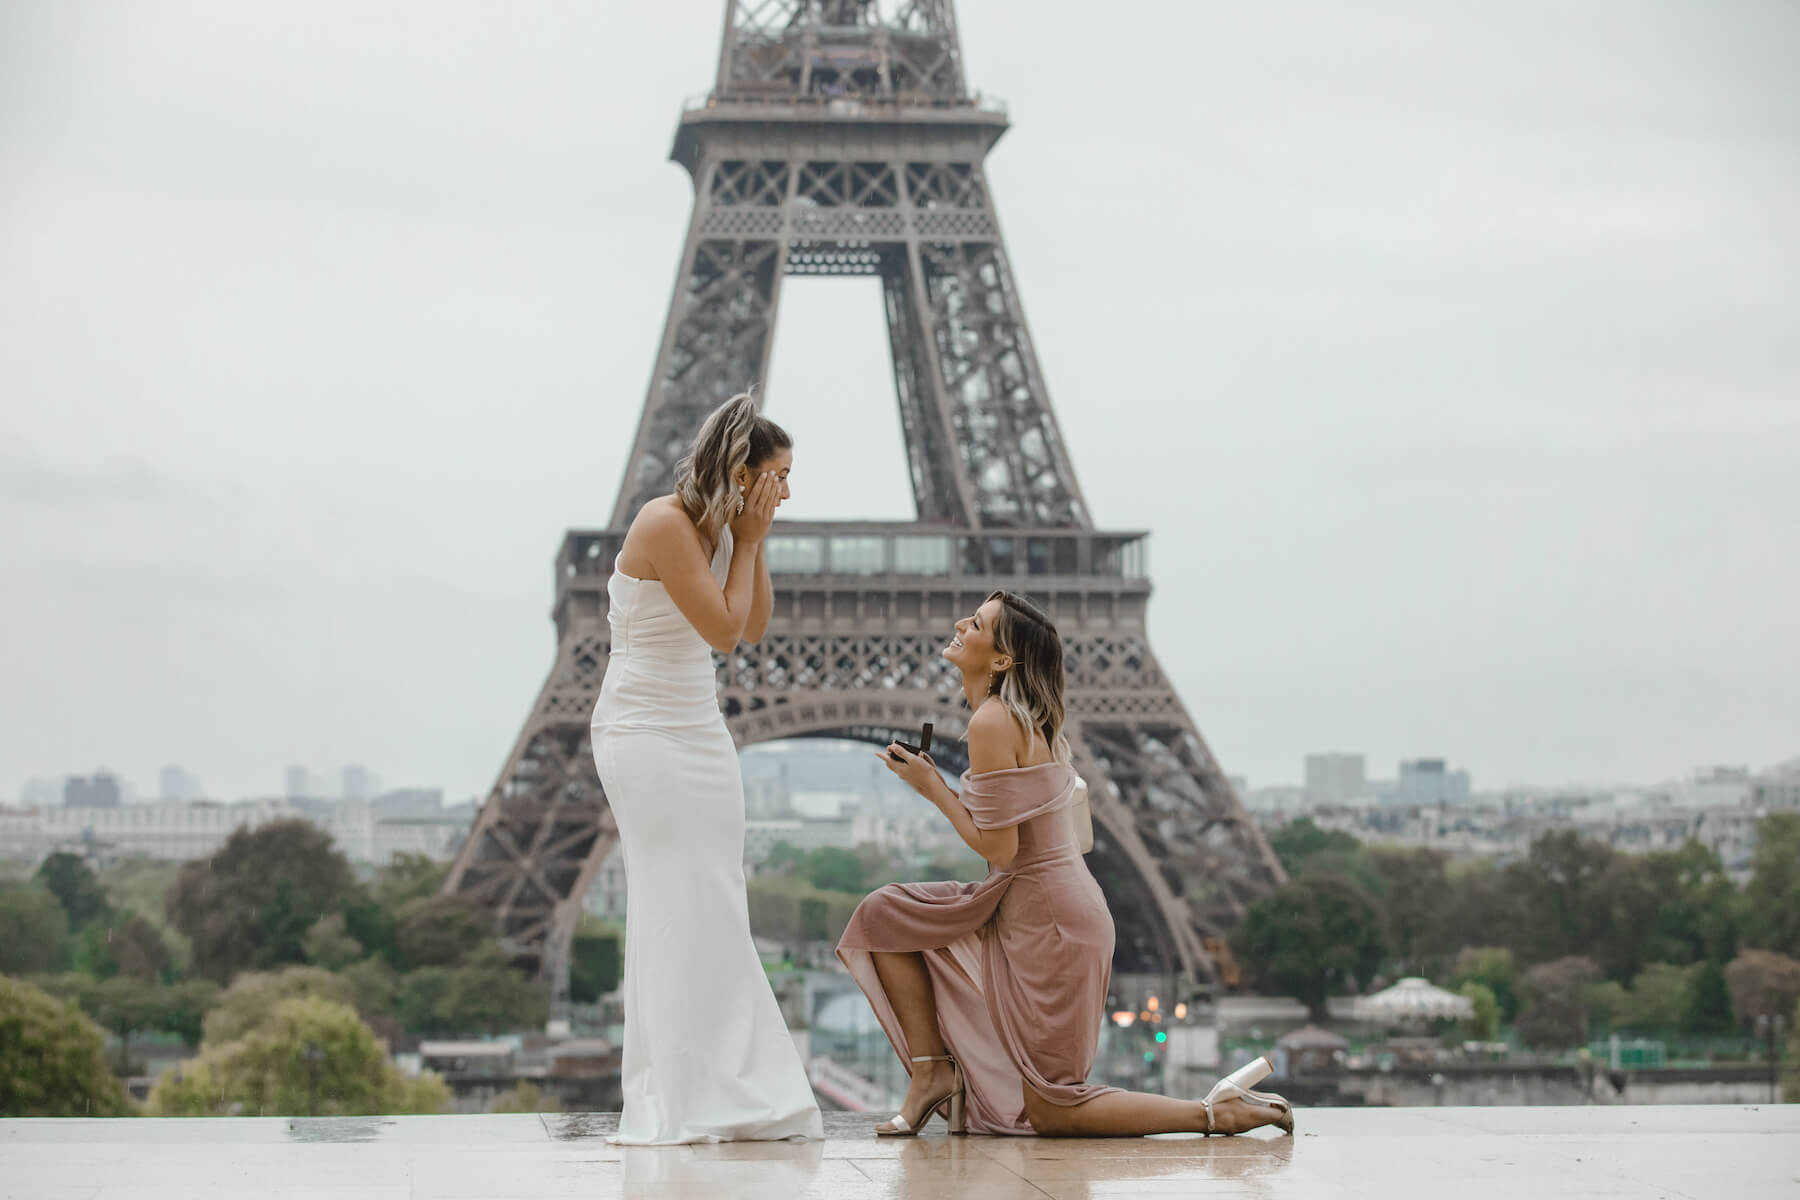 one woman is on one knee proposing to the other woman, both women are wearing formal dresses and are standing in front of the Eiffel Tower in Paris